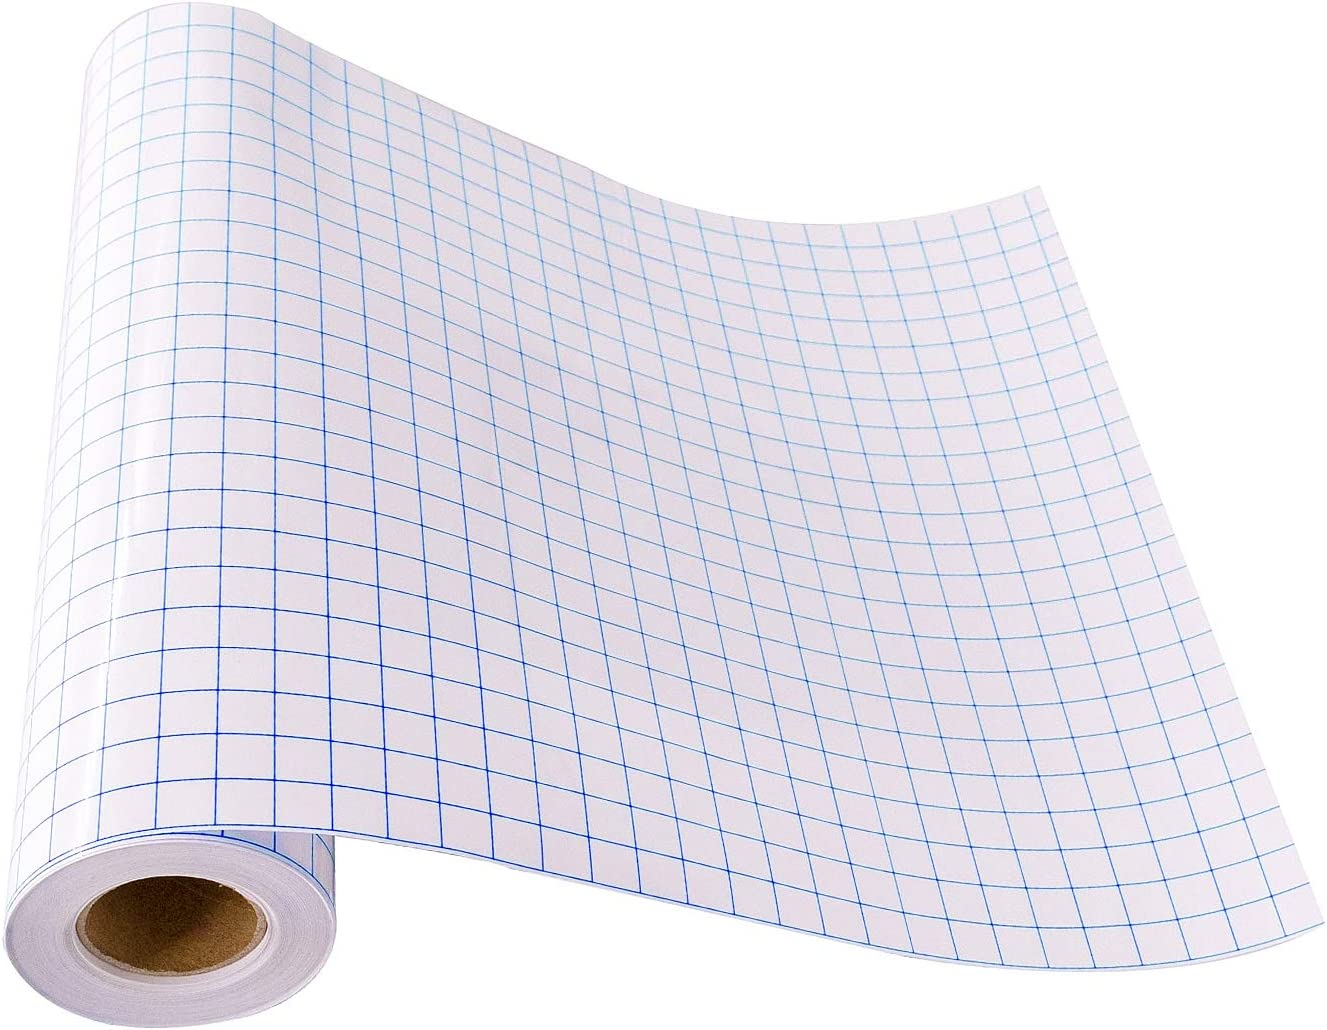 Vinyl Transfer Paper with Grid Medium Tack Application Tape Vinyl Transfer tape Red Grid Vinyl Transfer Paper w Backing 12 by 12 sheets